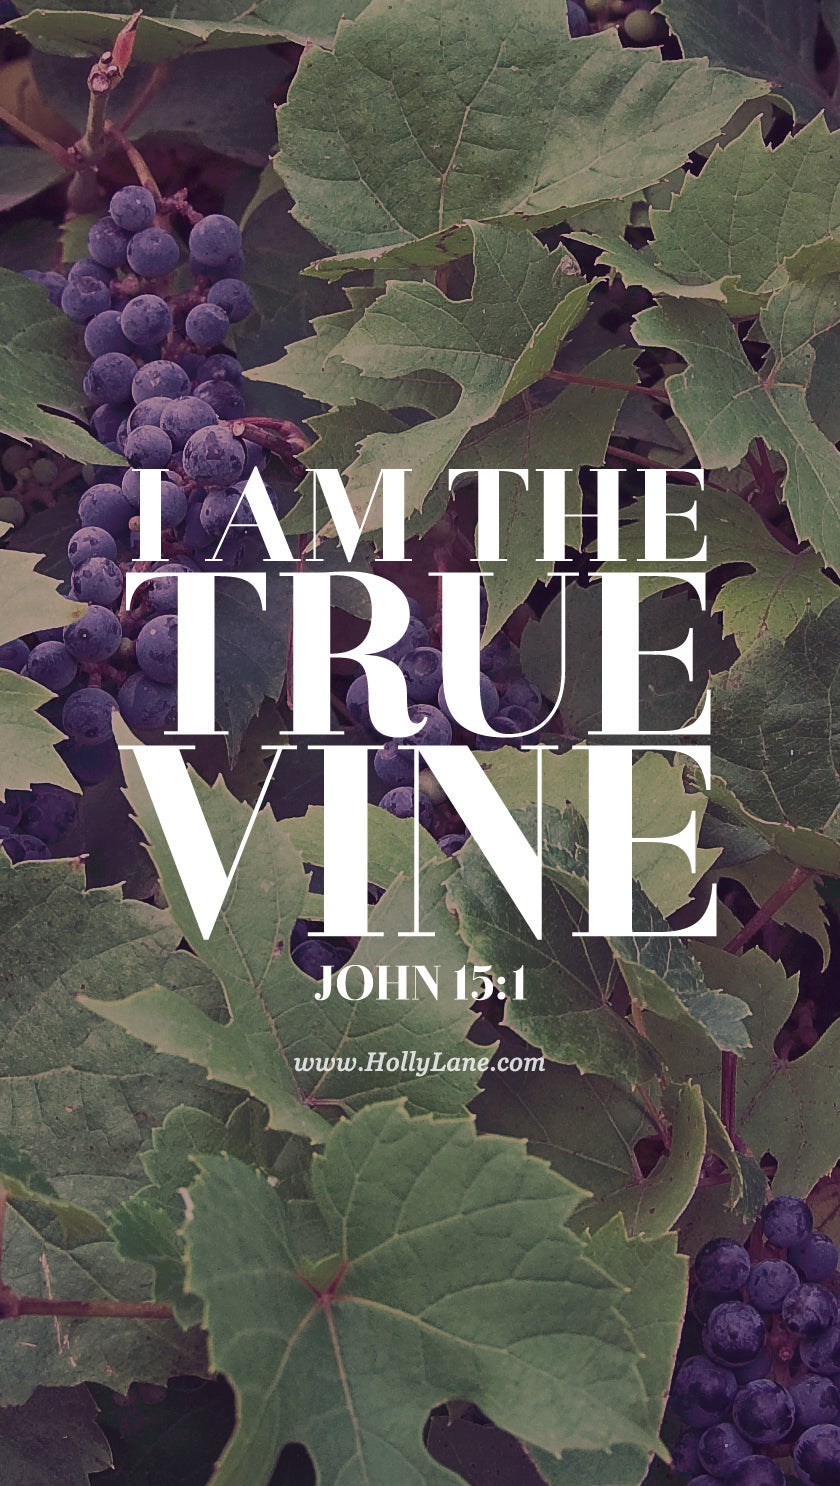 """I am the true vine, and my Father is the gardener. He cuts off every branch in me that bears no fruit, while every branch that does bear fruit he prunes so that it will be even more fruitful."" John 15:1-2 Free mobile wallpaper by hollylane.com"